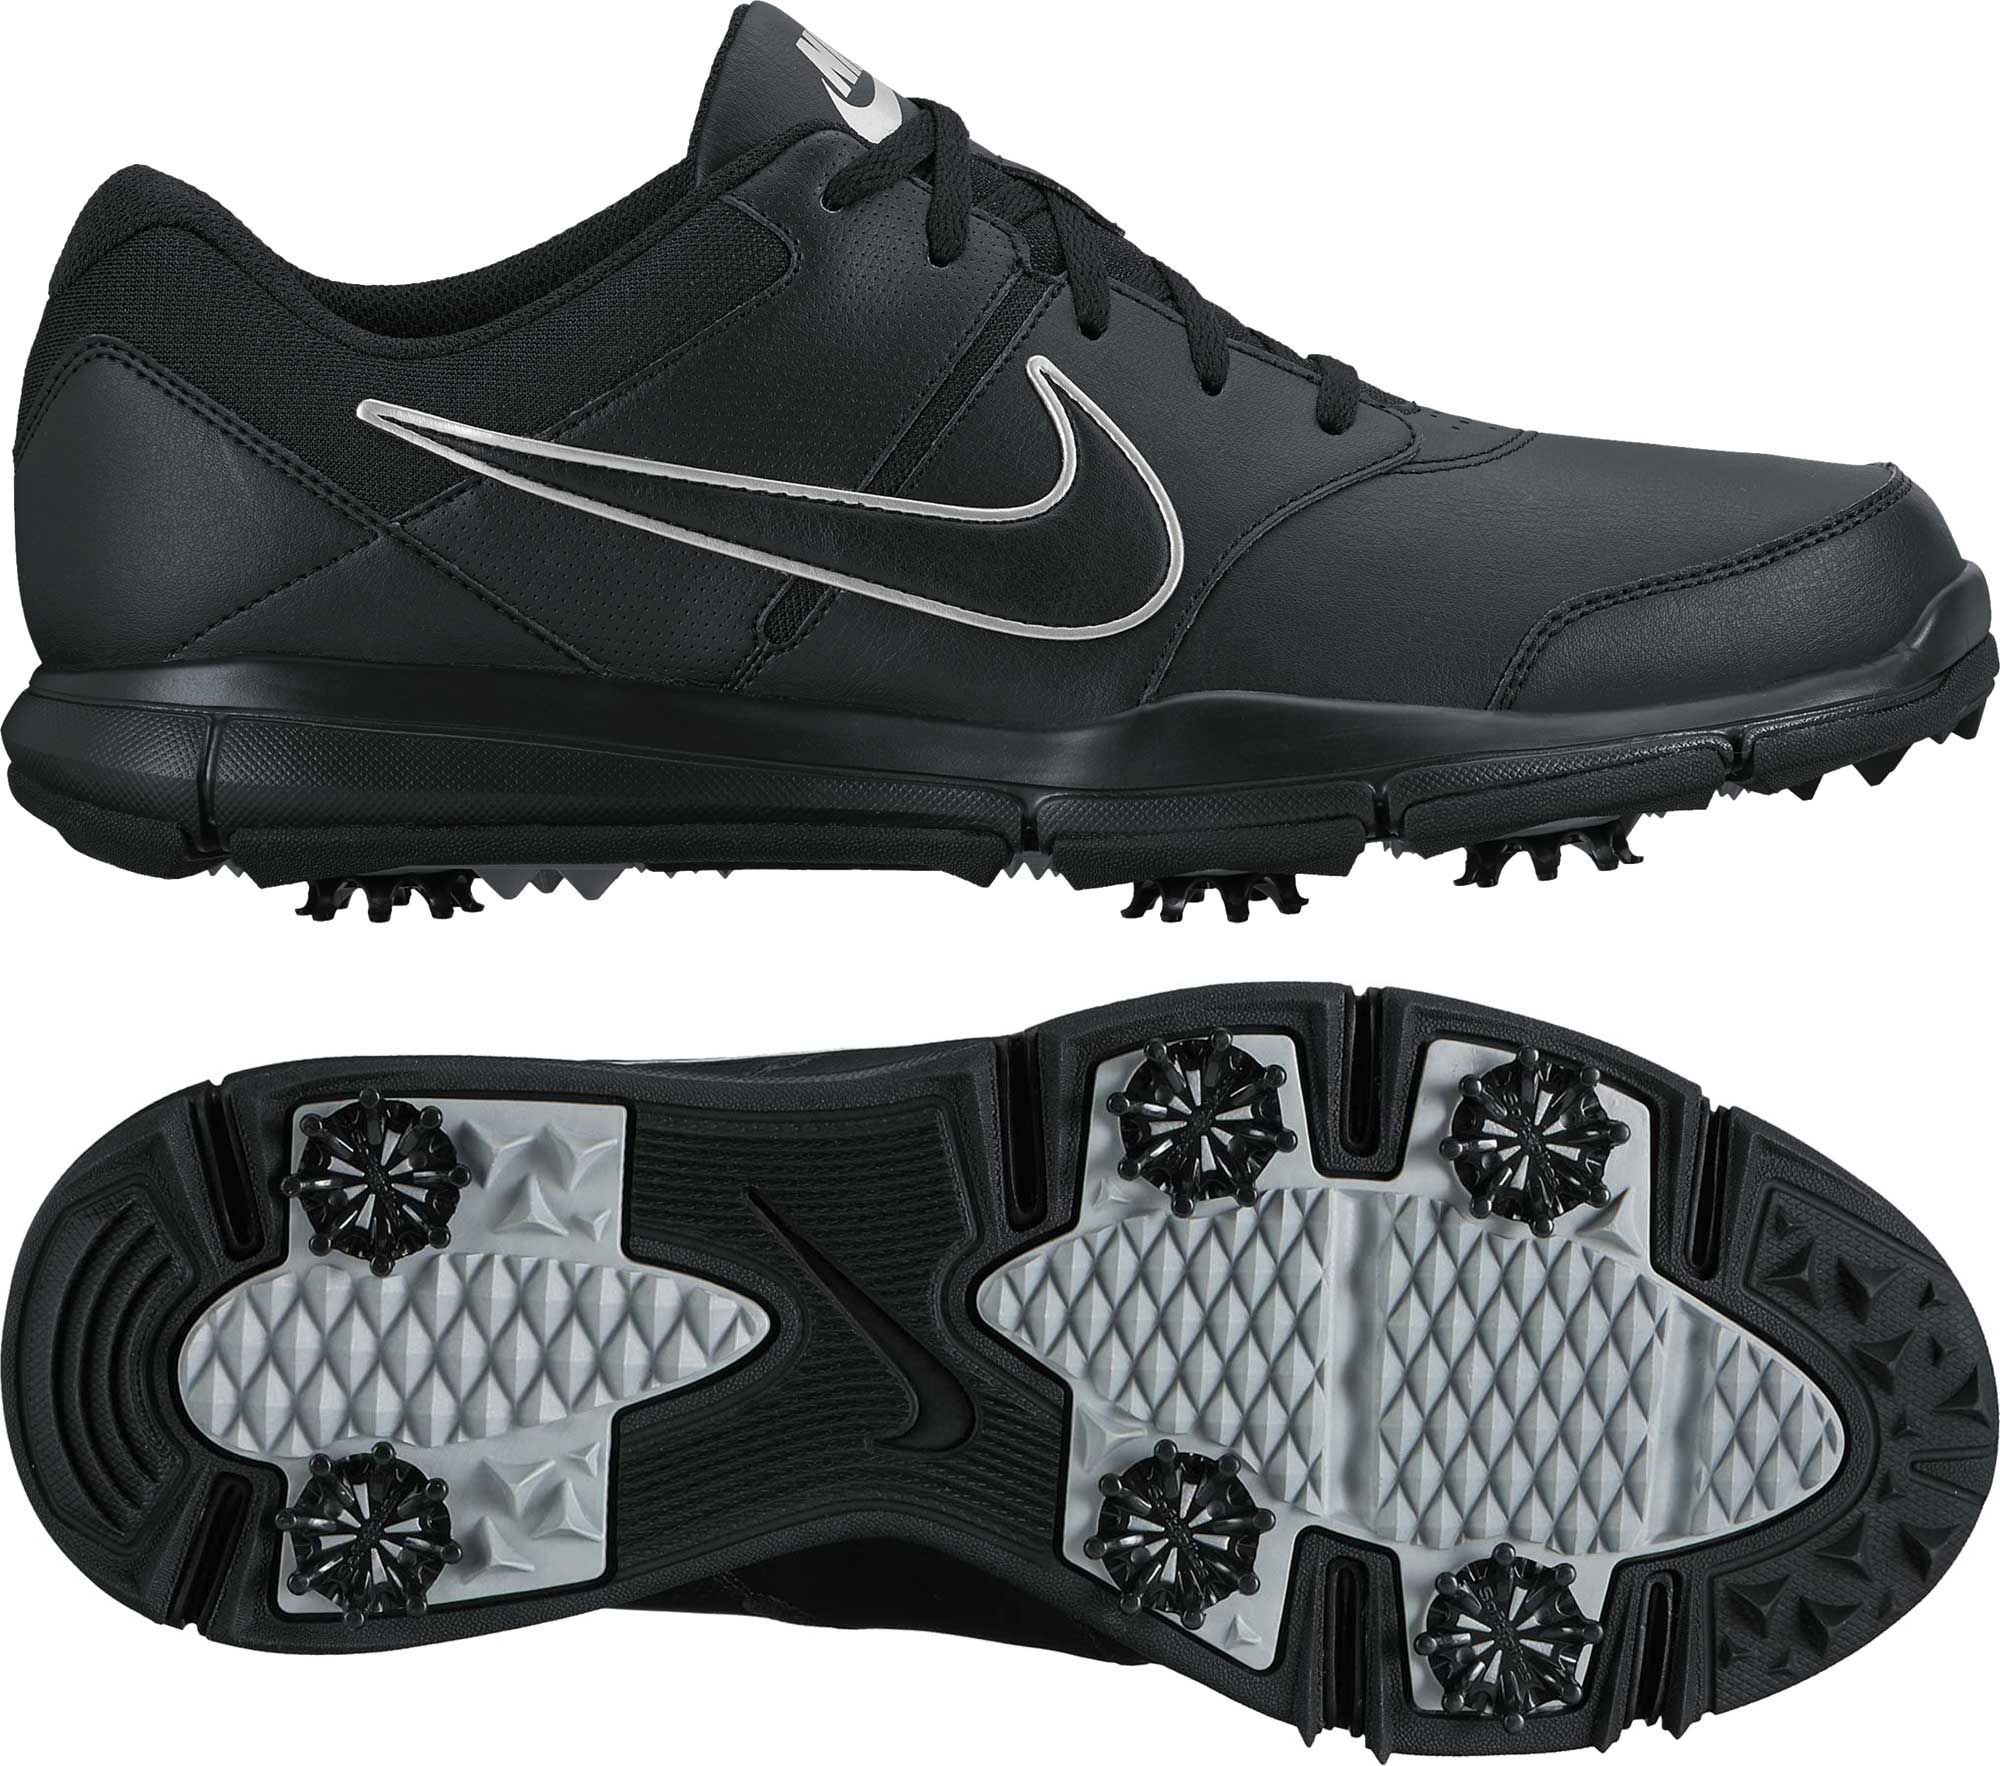 Nike Durasport 4 Shoes Golf Galaxy